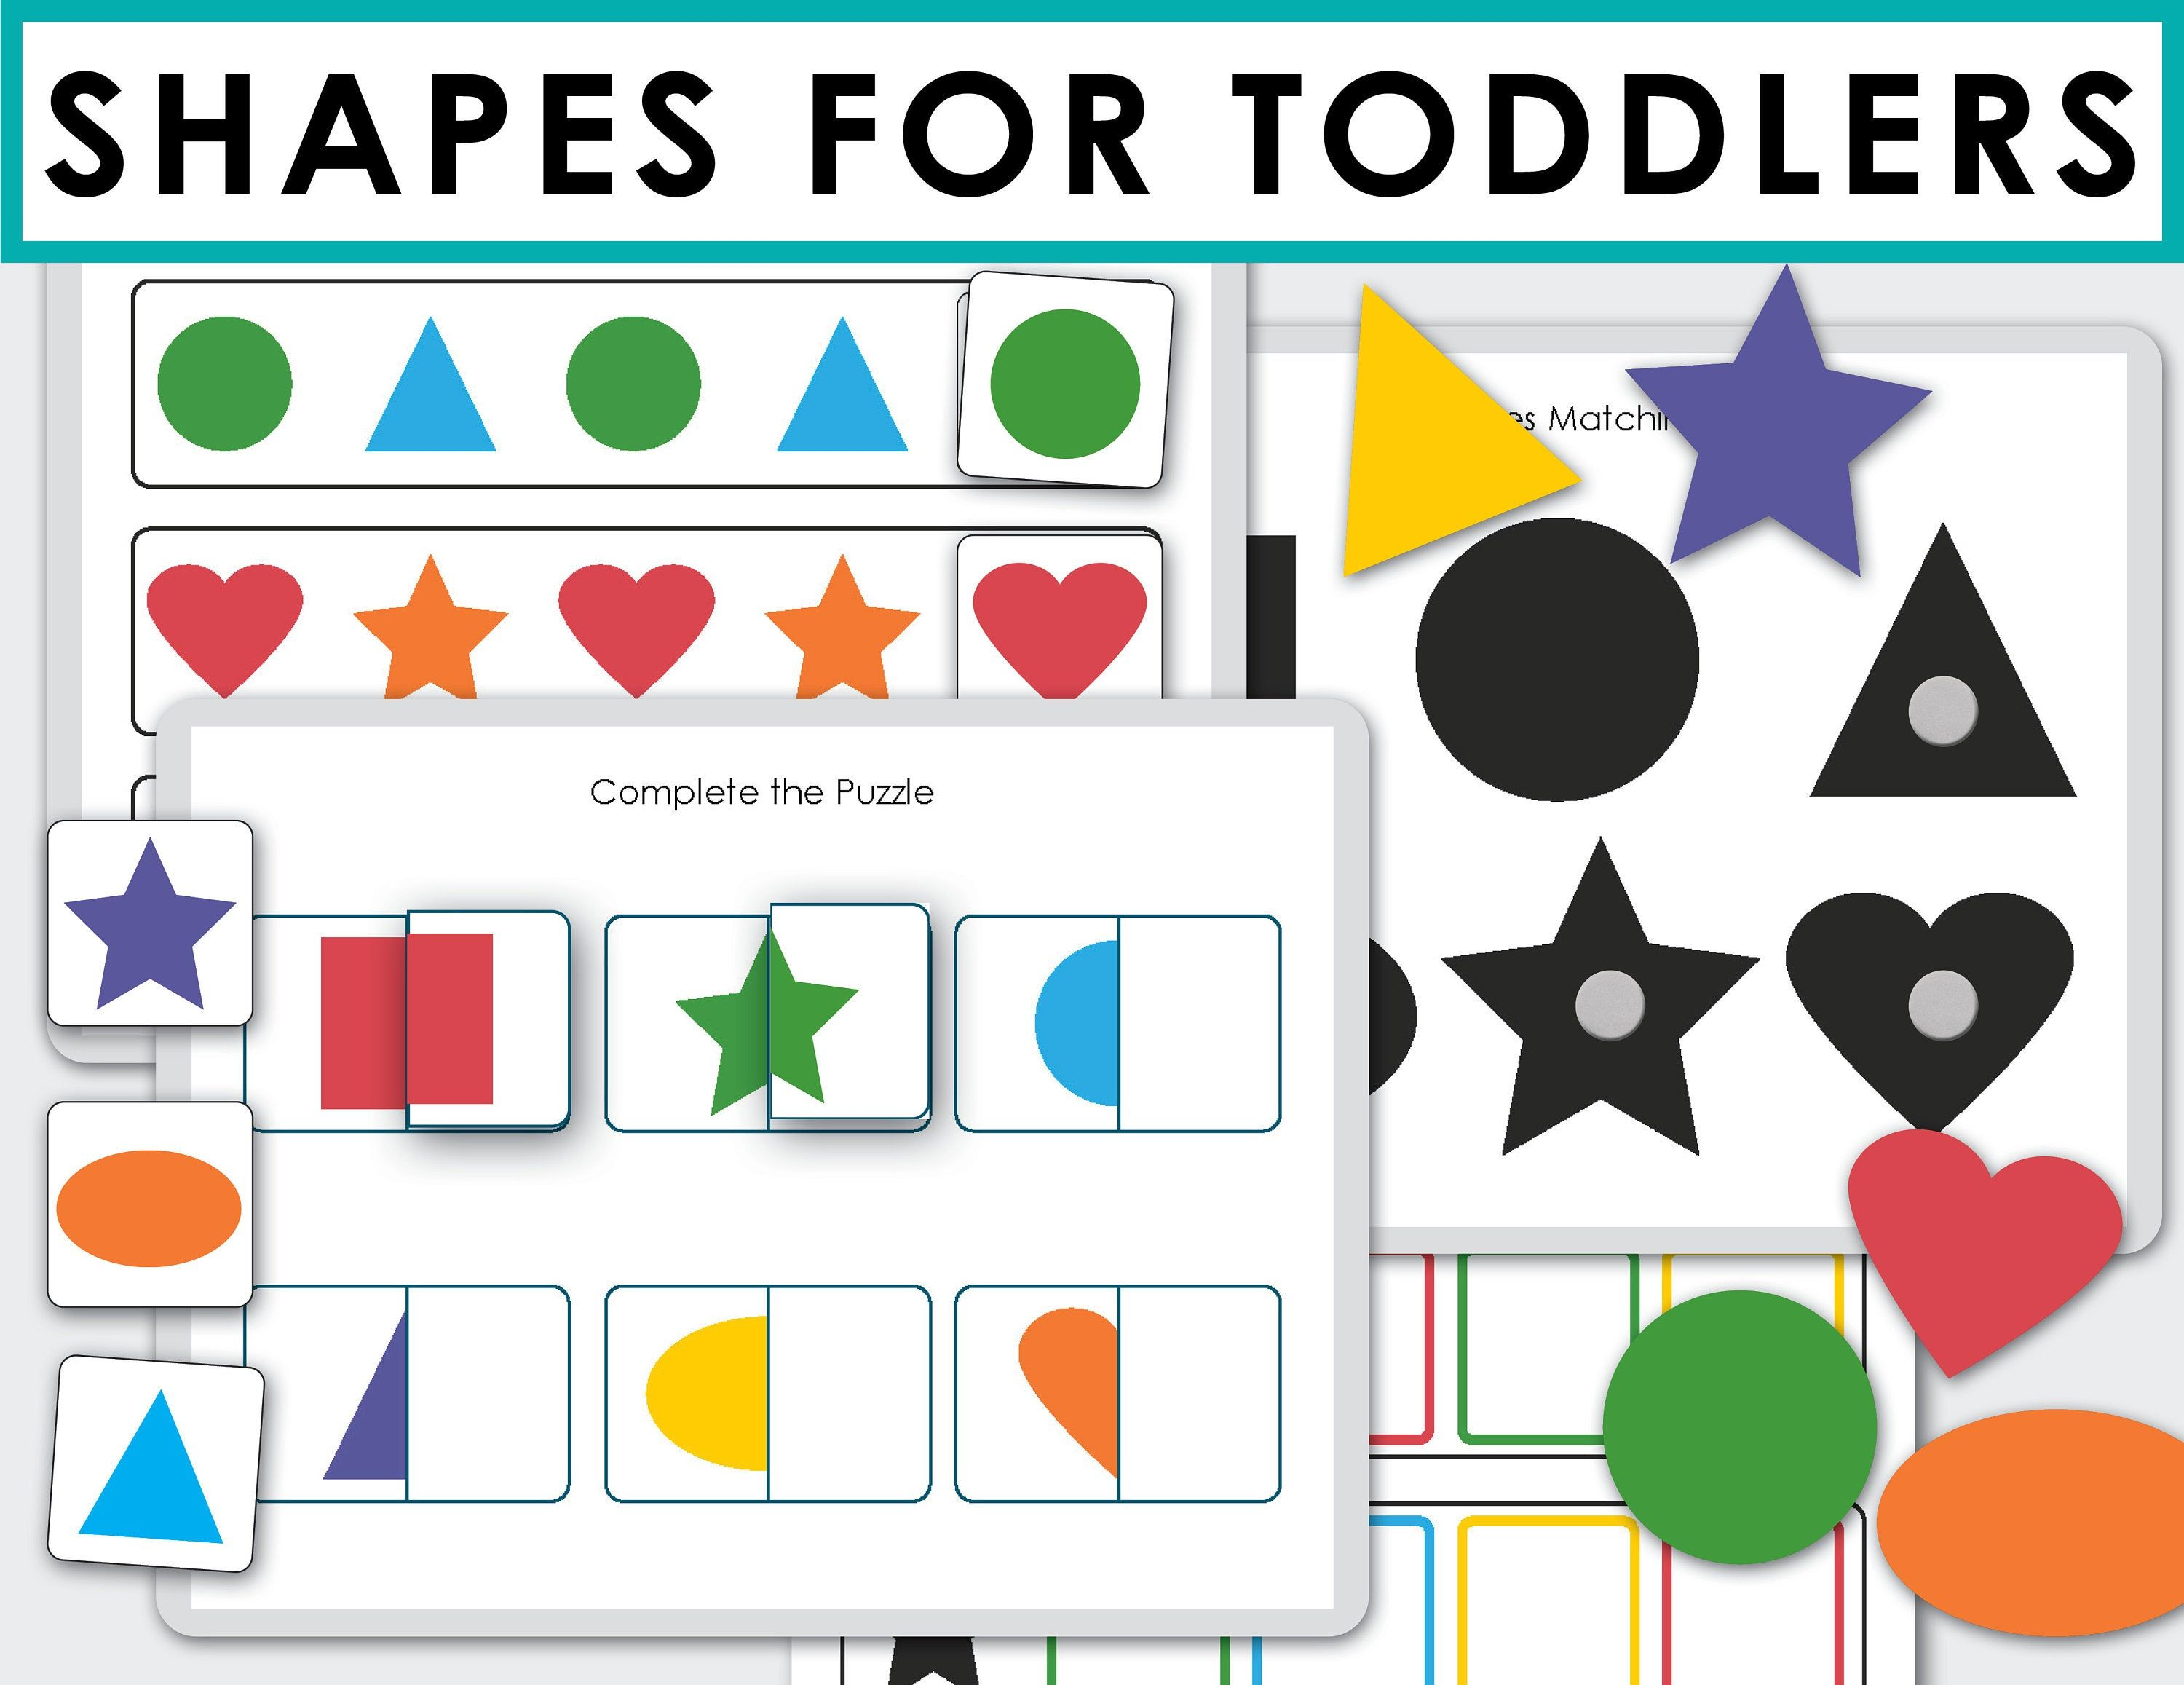 Shapes And Color Matching Activity Shape Match Printable Worksheets File Folder Game For Toddler Preschool Busy Book Color Sorting Activities Busy Toddler [ 2314 x 3000 Pixel ]